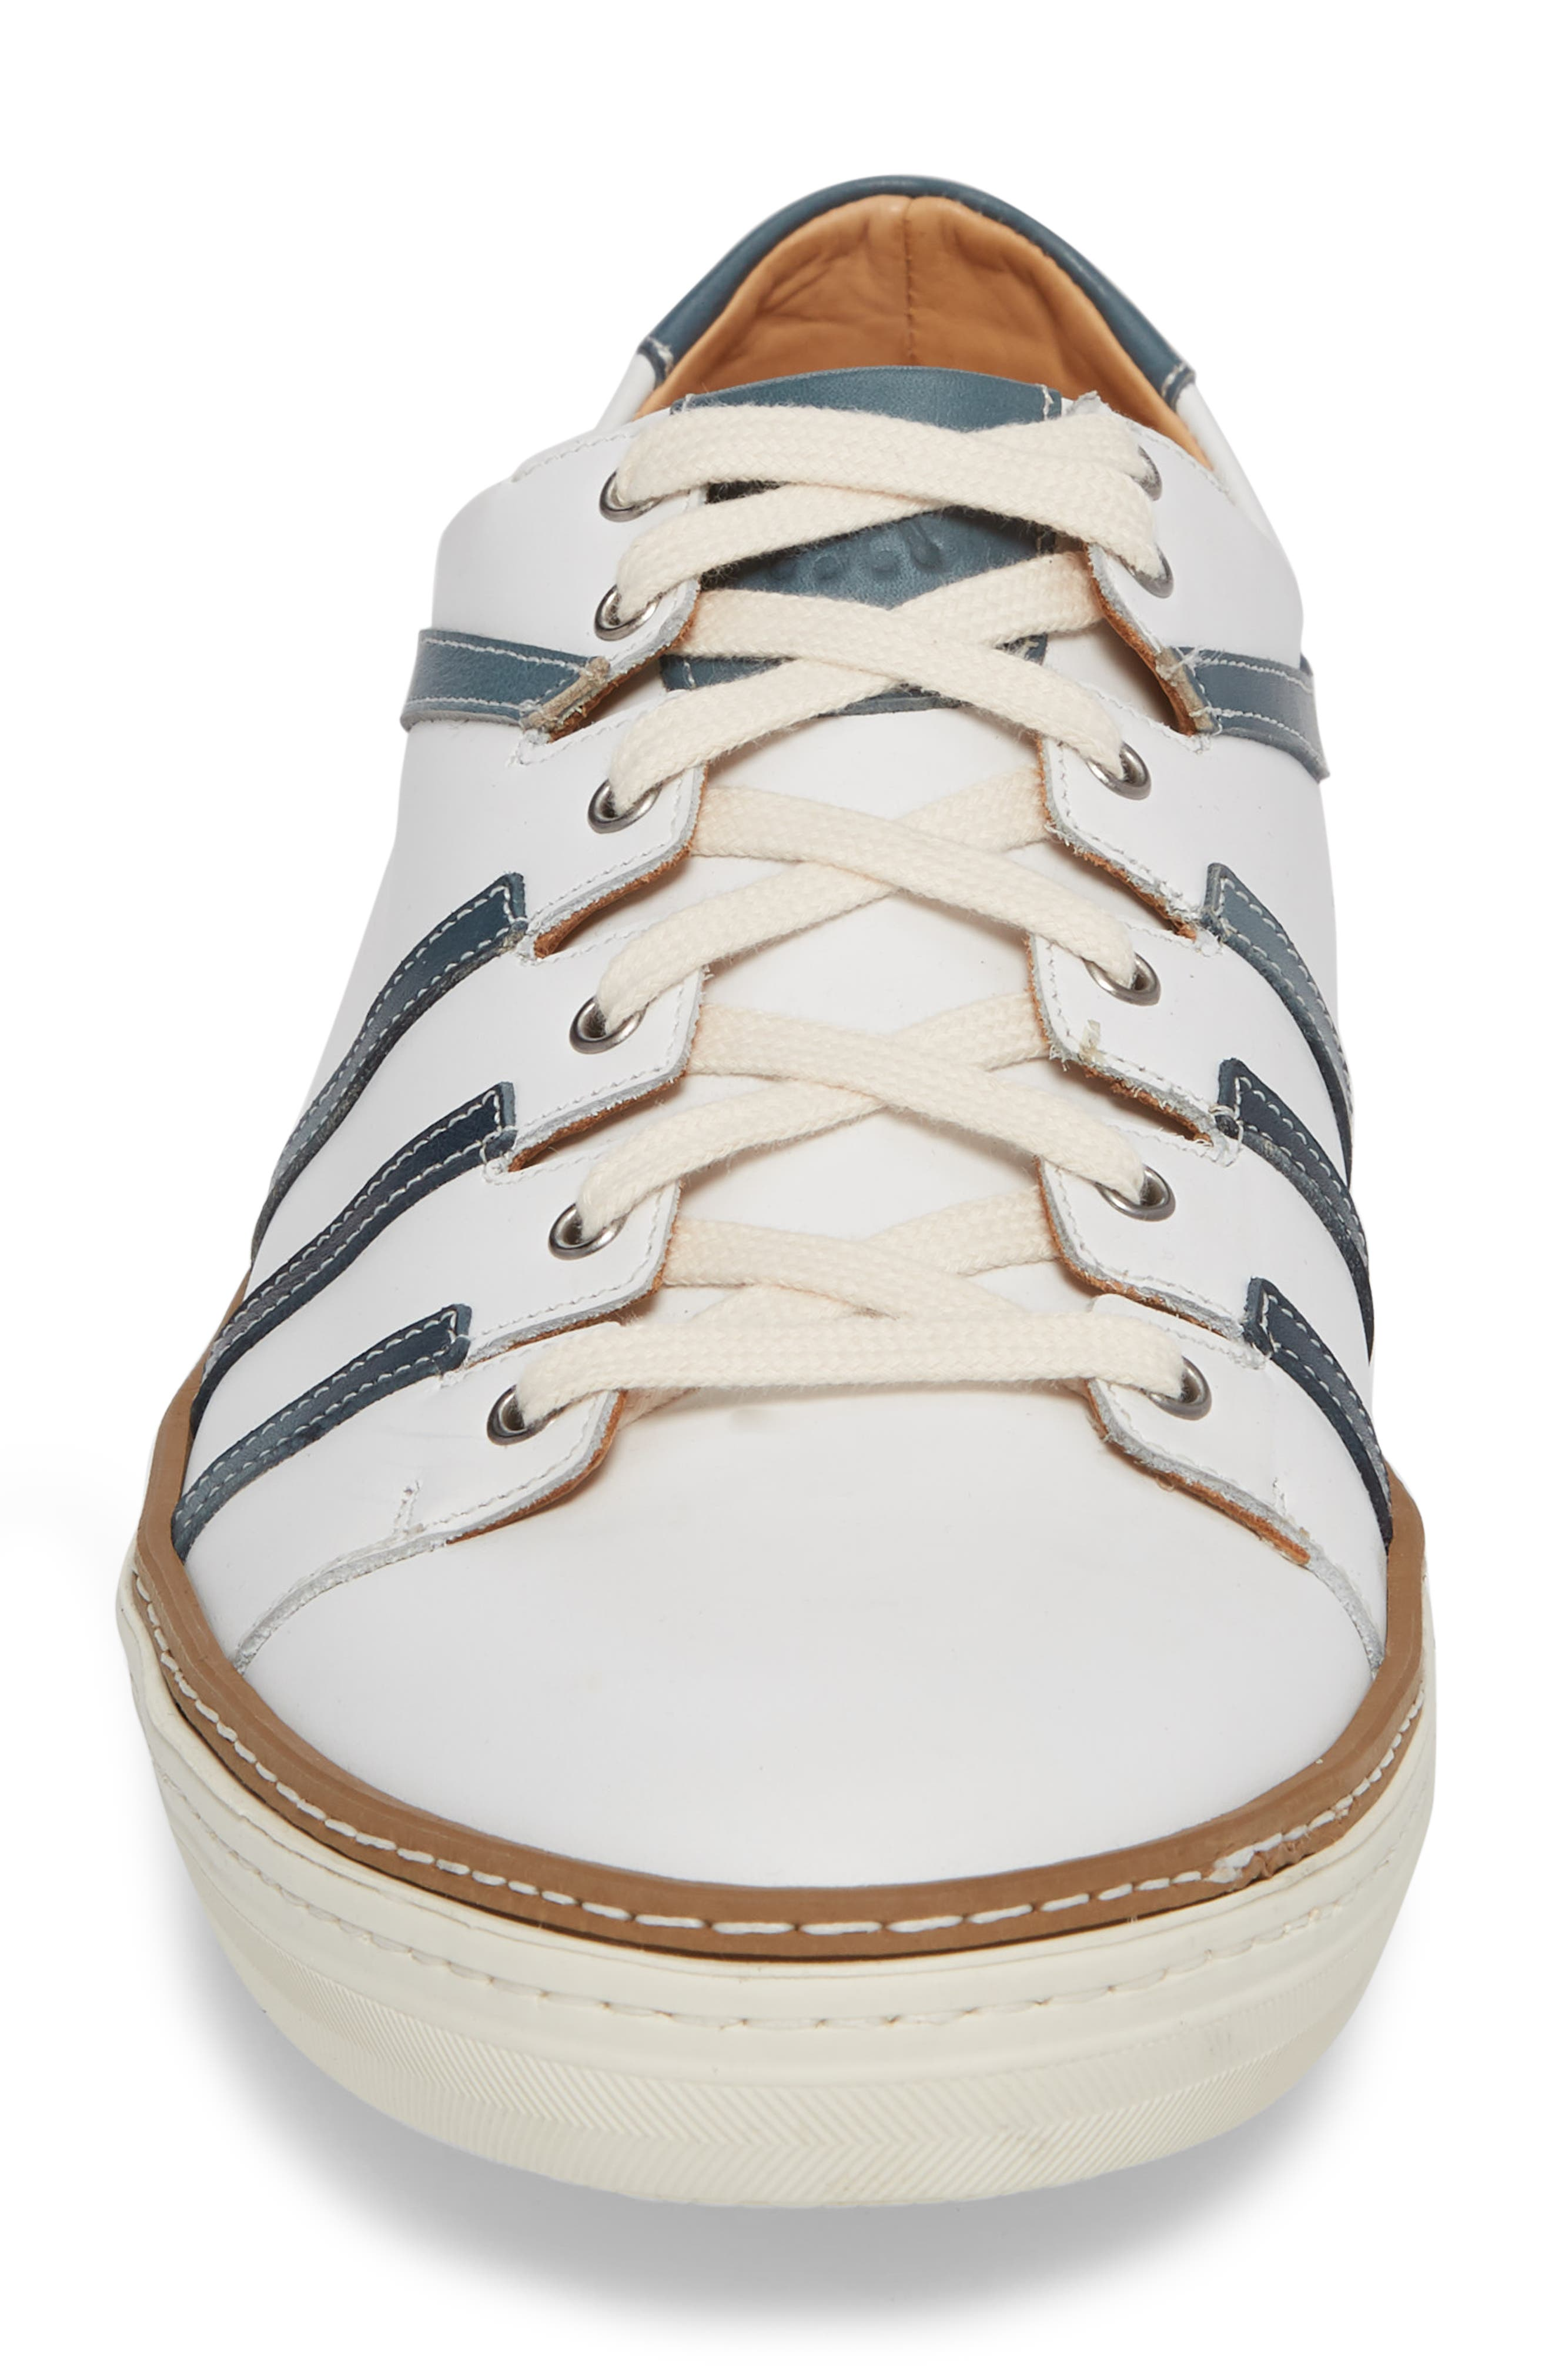 Tebas Striped Low Top Sneaker,                             Alternate thumbnail 4, color,                             WHITE/ JEANS LEATHER